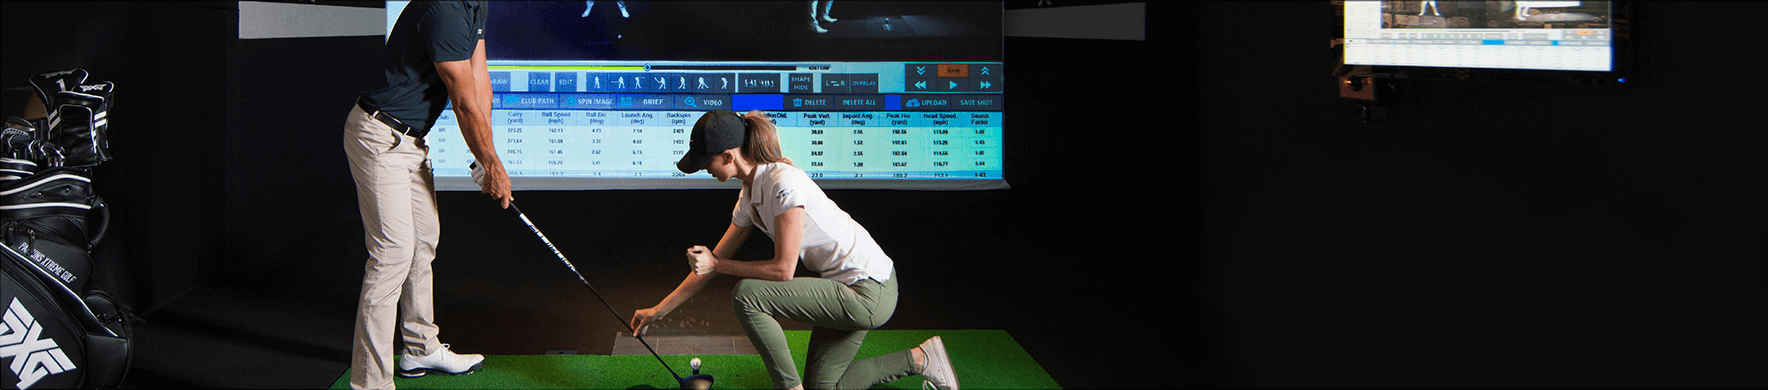 X-Golf Lessons - Coach helping Player Improve